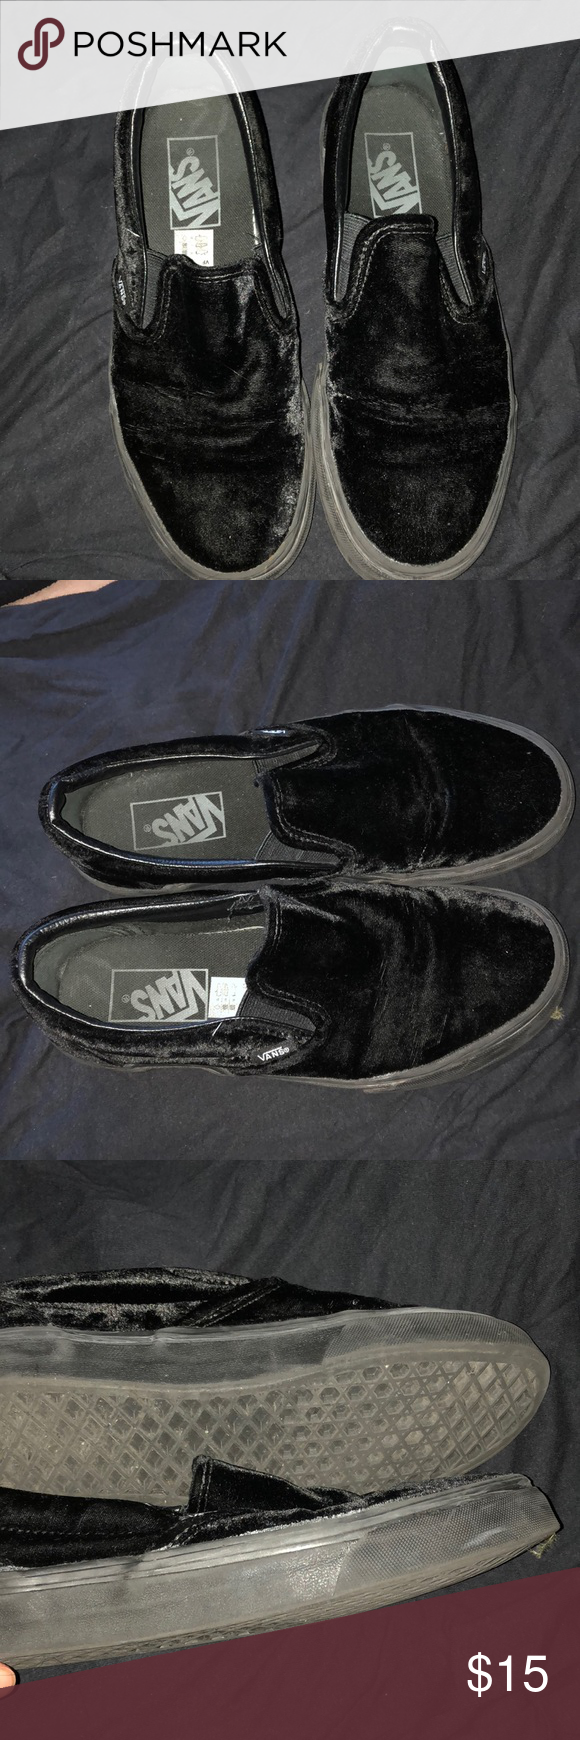 4feb4a38bcba VANS SLIP ON VELVET SHOE BlAck Used 4 times Bought on Depop Still in good  condition Creases but they aren t noticeable Men size 5 Women size 6.5 Vans  Shoes